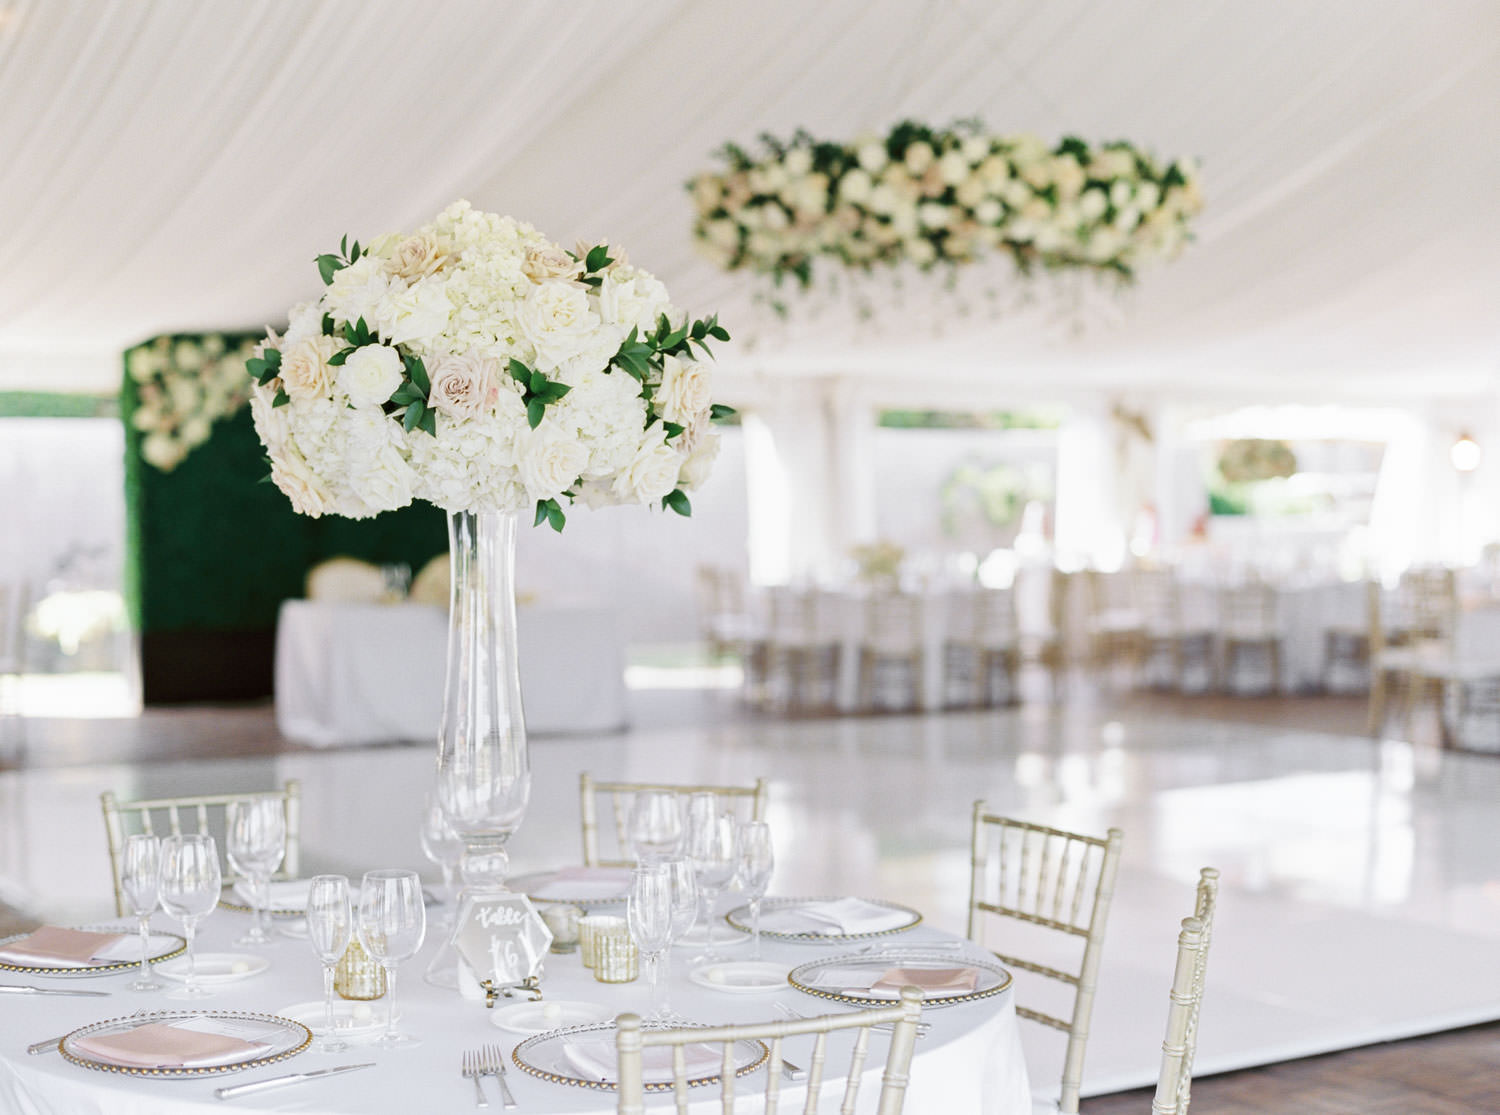 Film photo of a wedding reception tall centerpiece with white and green flowers at the Santaluz Club tented reception, Cavin Elizabeth Photography